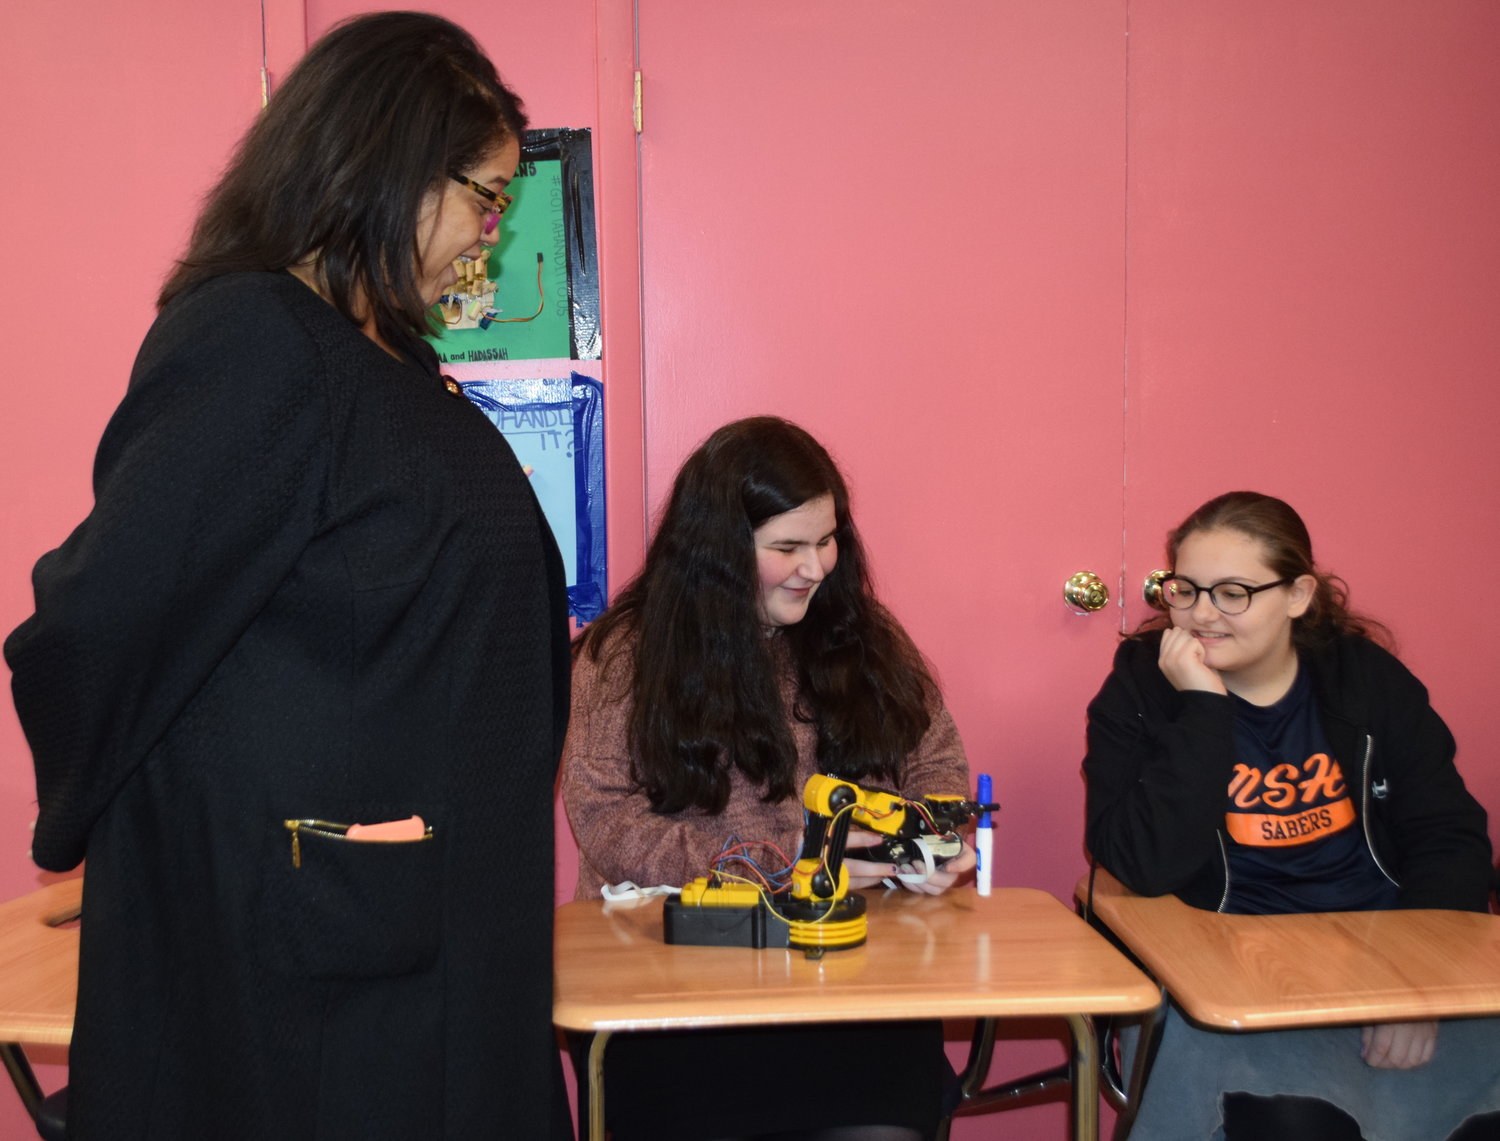 State Assemblywoman Michaelle Solages was impressed by the robotic arm built by MSH sophomores Ayala Terebelo, center, and Emily Weintraub.